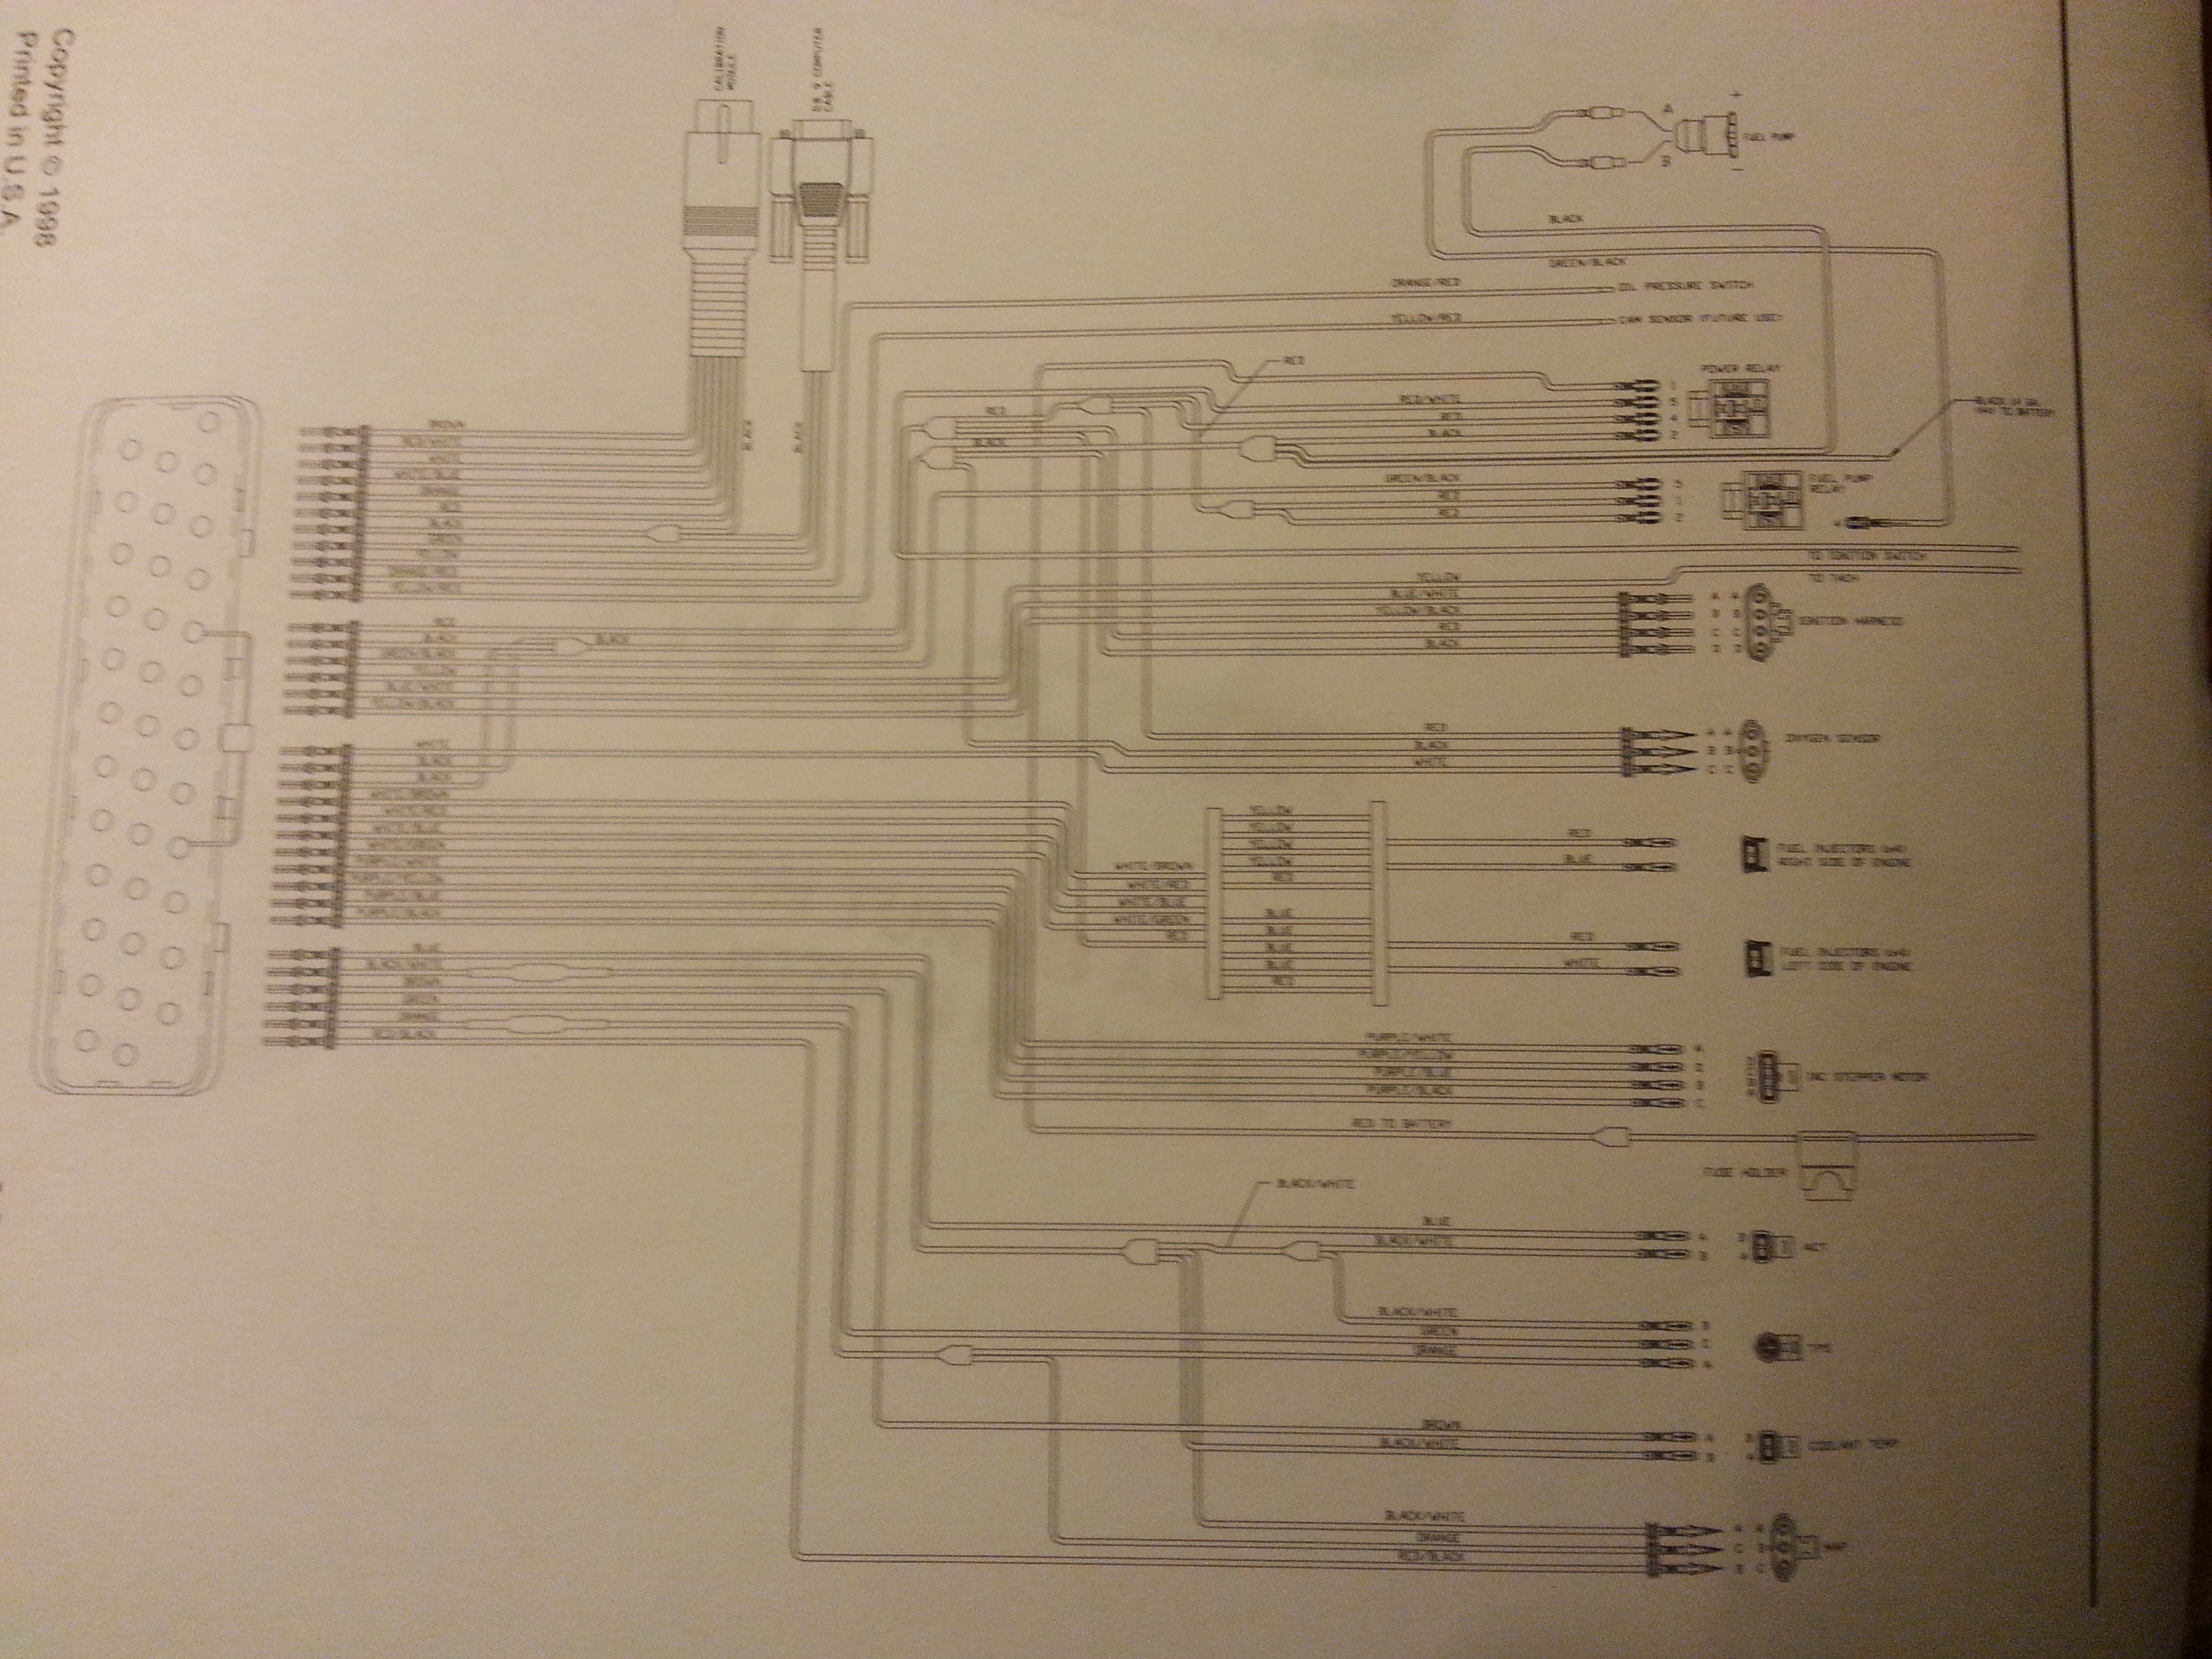 33150967963_f08af33678_o holley pro jection 2 mpi ecu holley commander 950 wiring diagram at creativeand.co